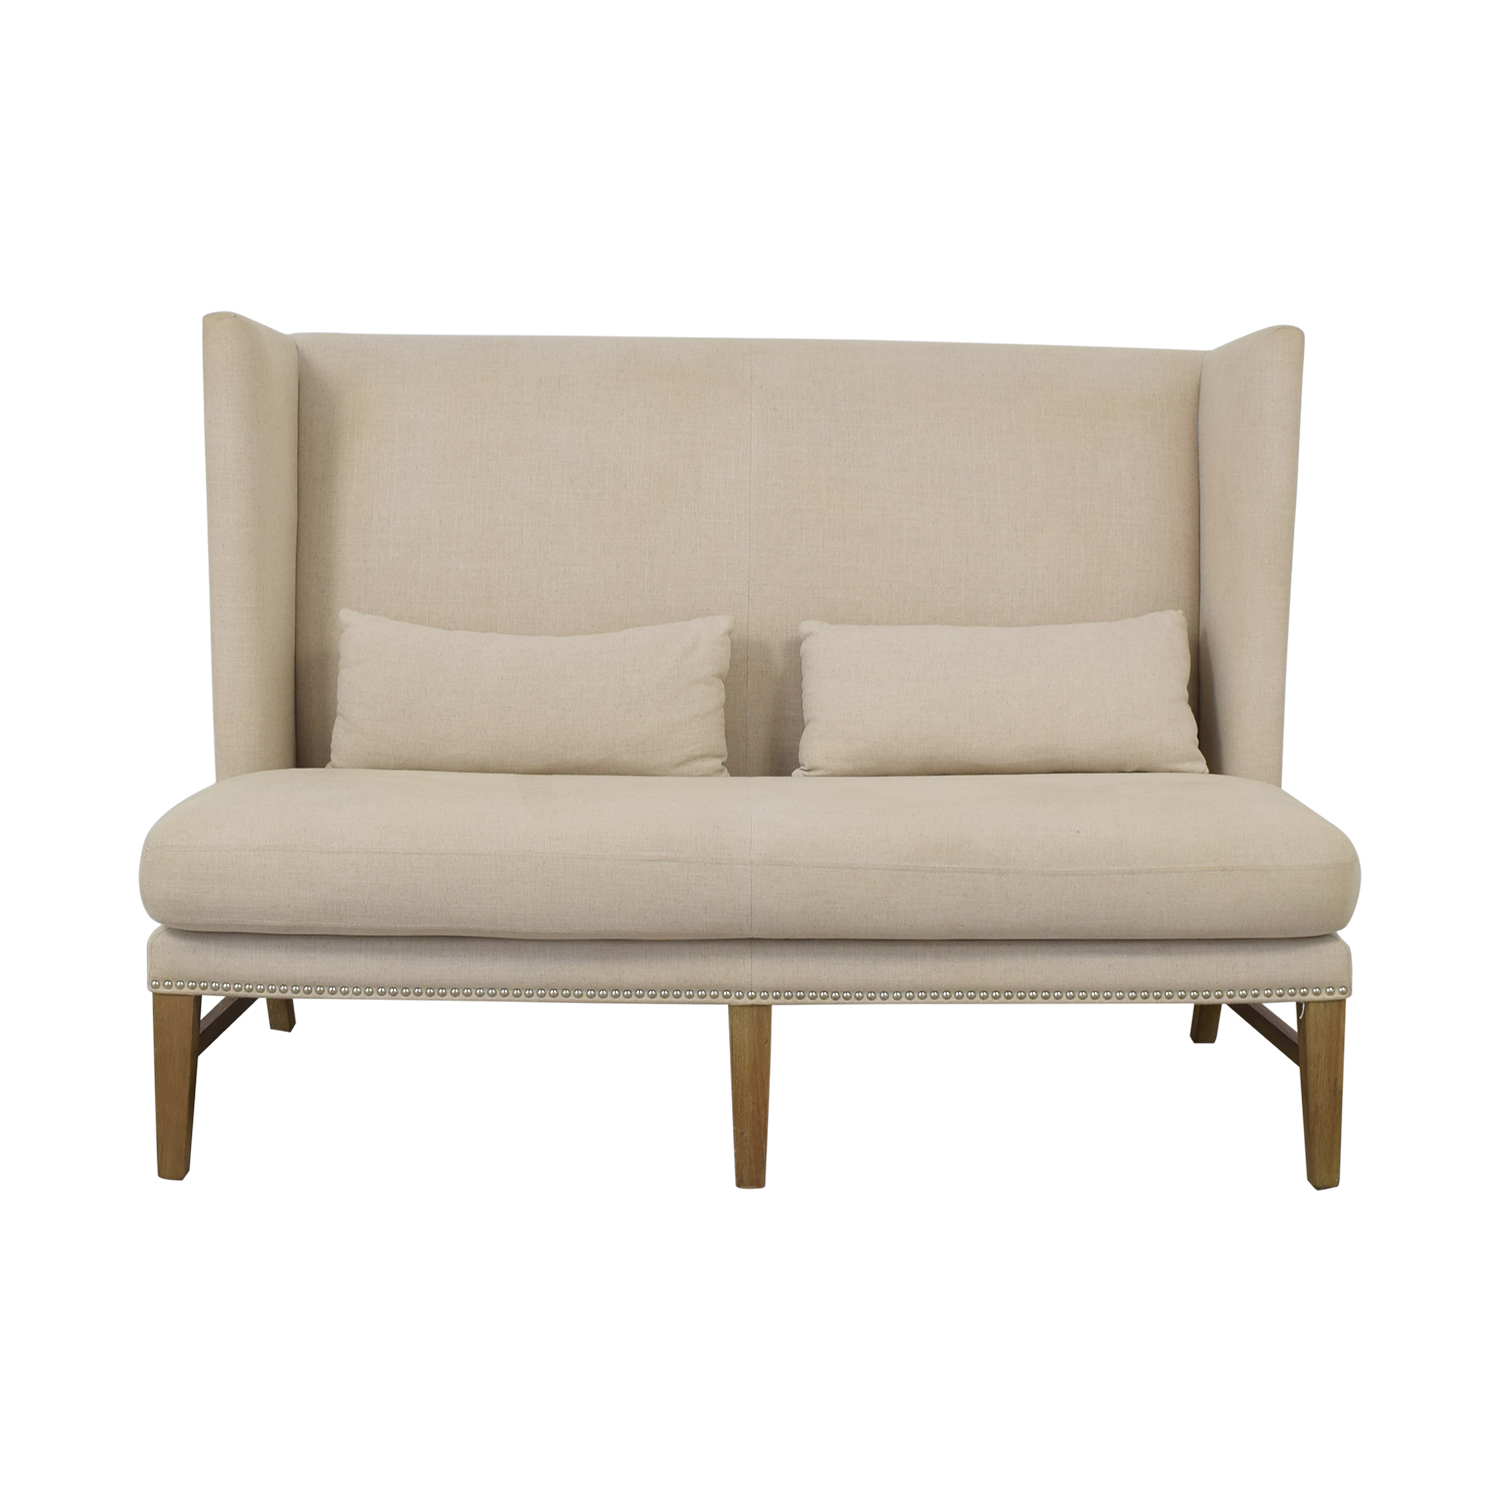 buy Sunpan '5West' Malibu Linen Fabric Upholstered Loveseat Sunpan Sofas